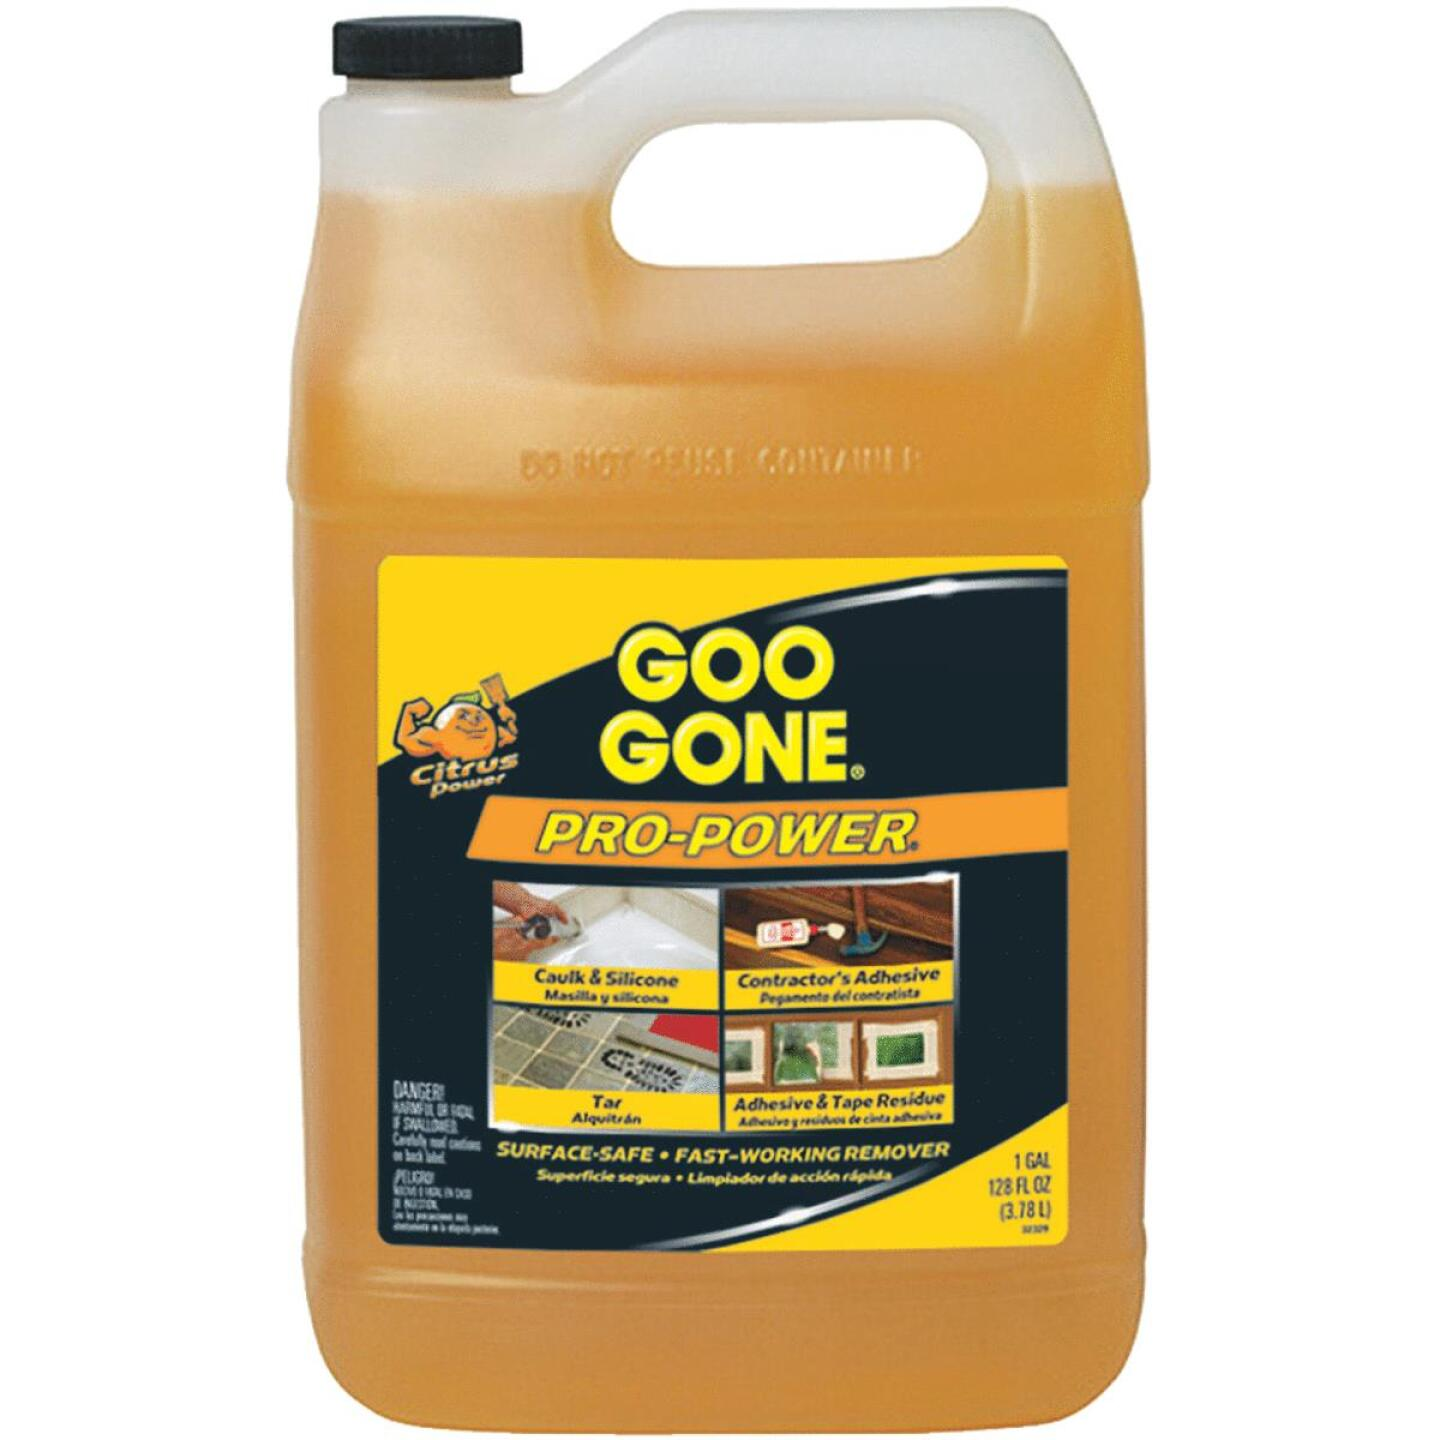 Goo Gone 1 Gal. Pro-Power Adhesive Remover Image 181